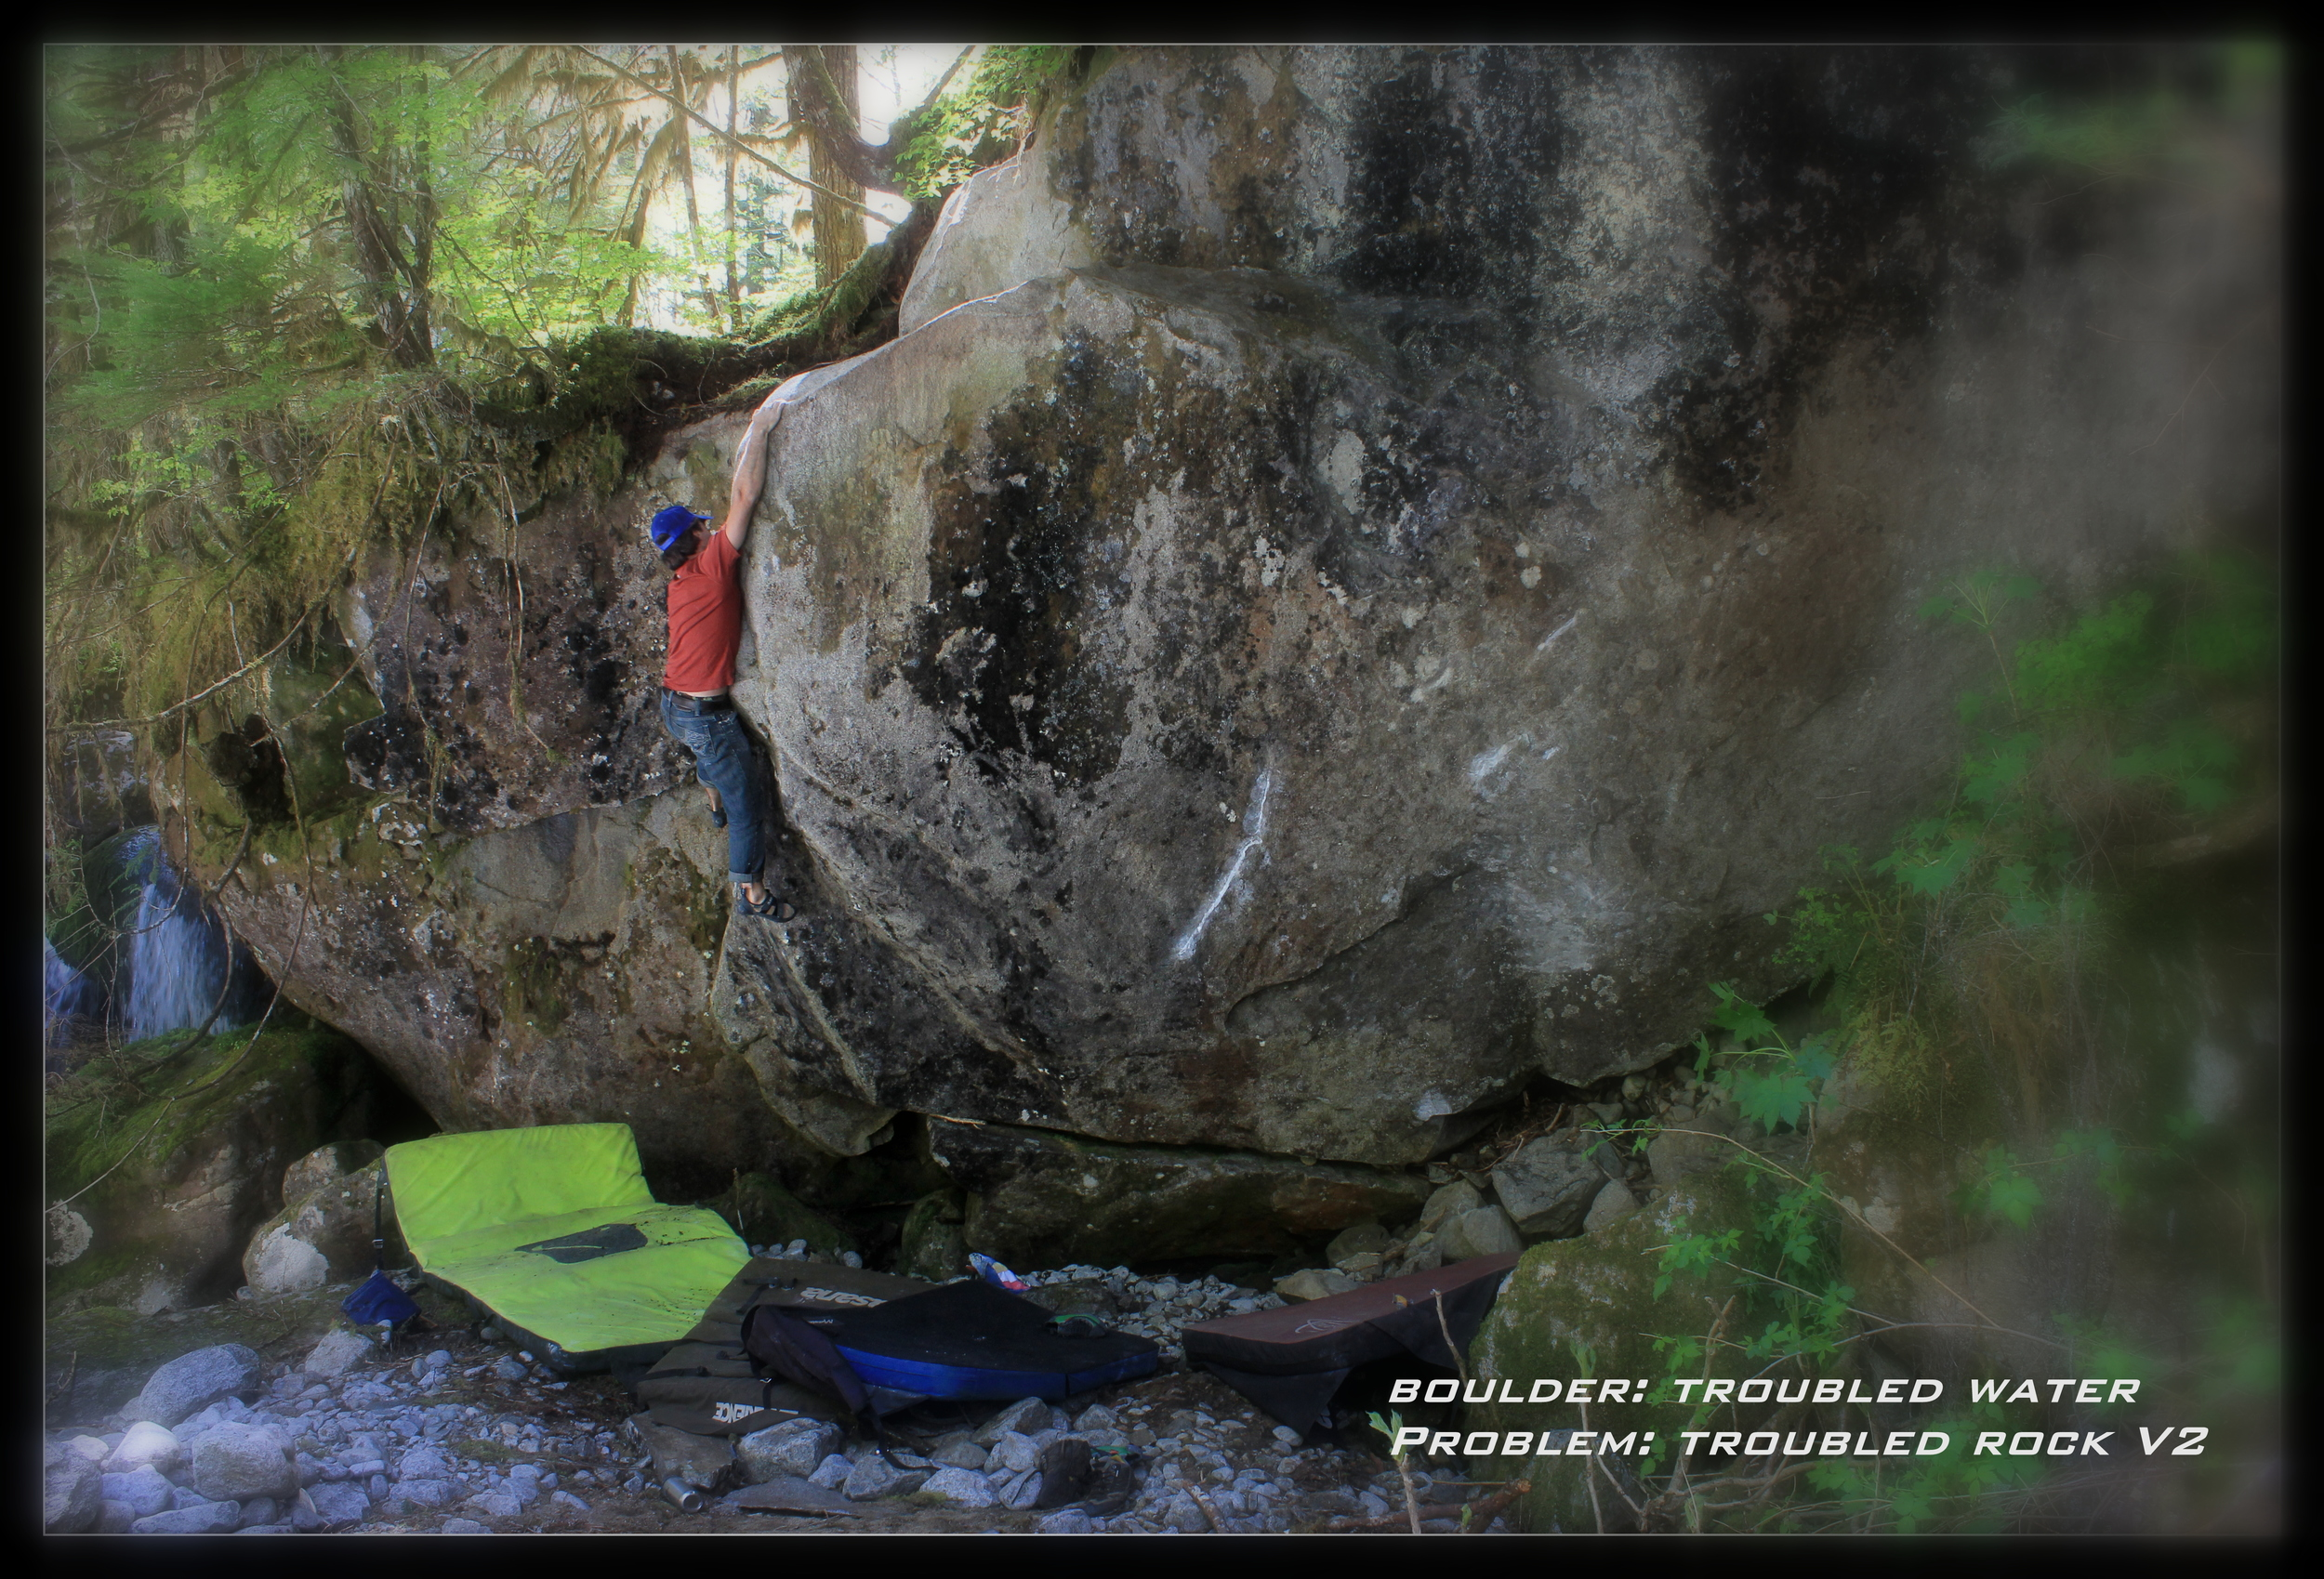 Troubled Rock-V2  Morpheus Bouldering Area  FA Pablo Zuleta  Begin low next to the Troubled Water Project and move up the arete and crack to a top out. These lines are situated next to a beautiful waterfall.  Pictured: Pablo Zuleta